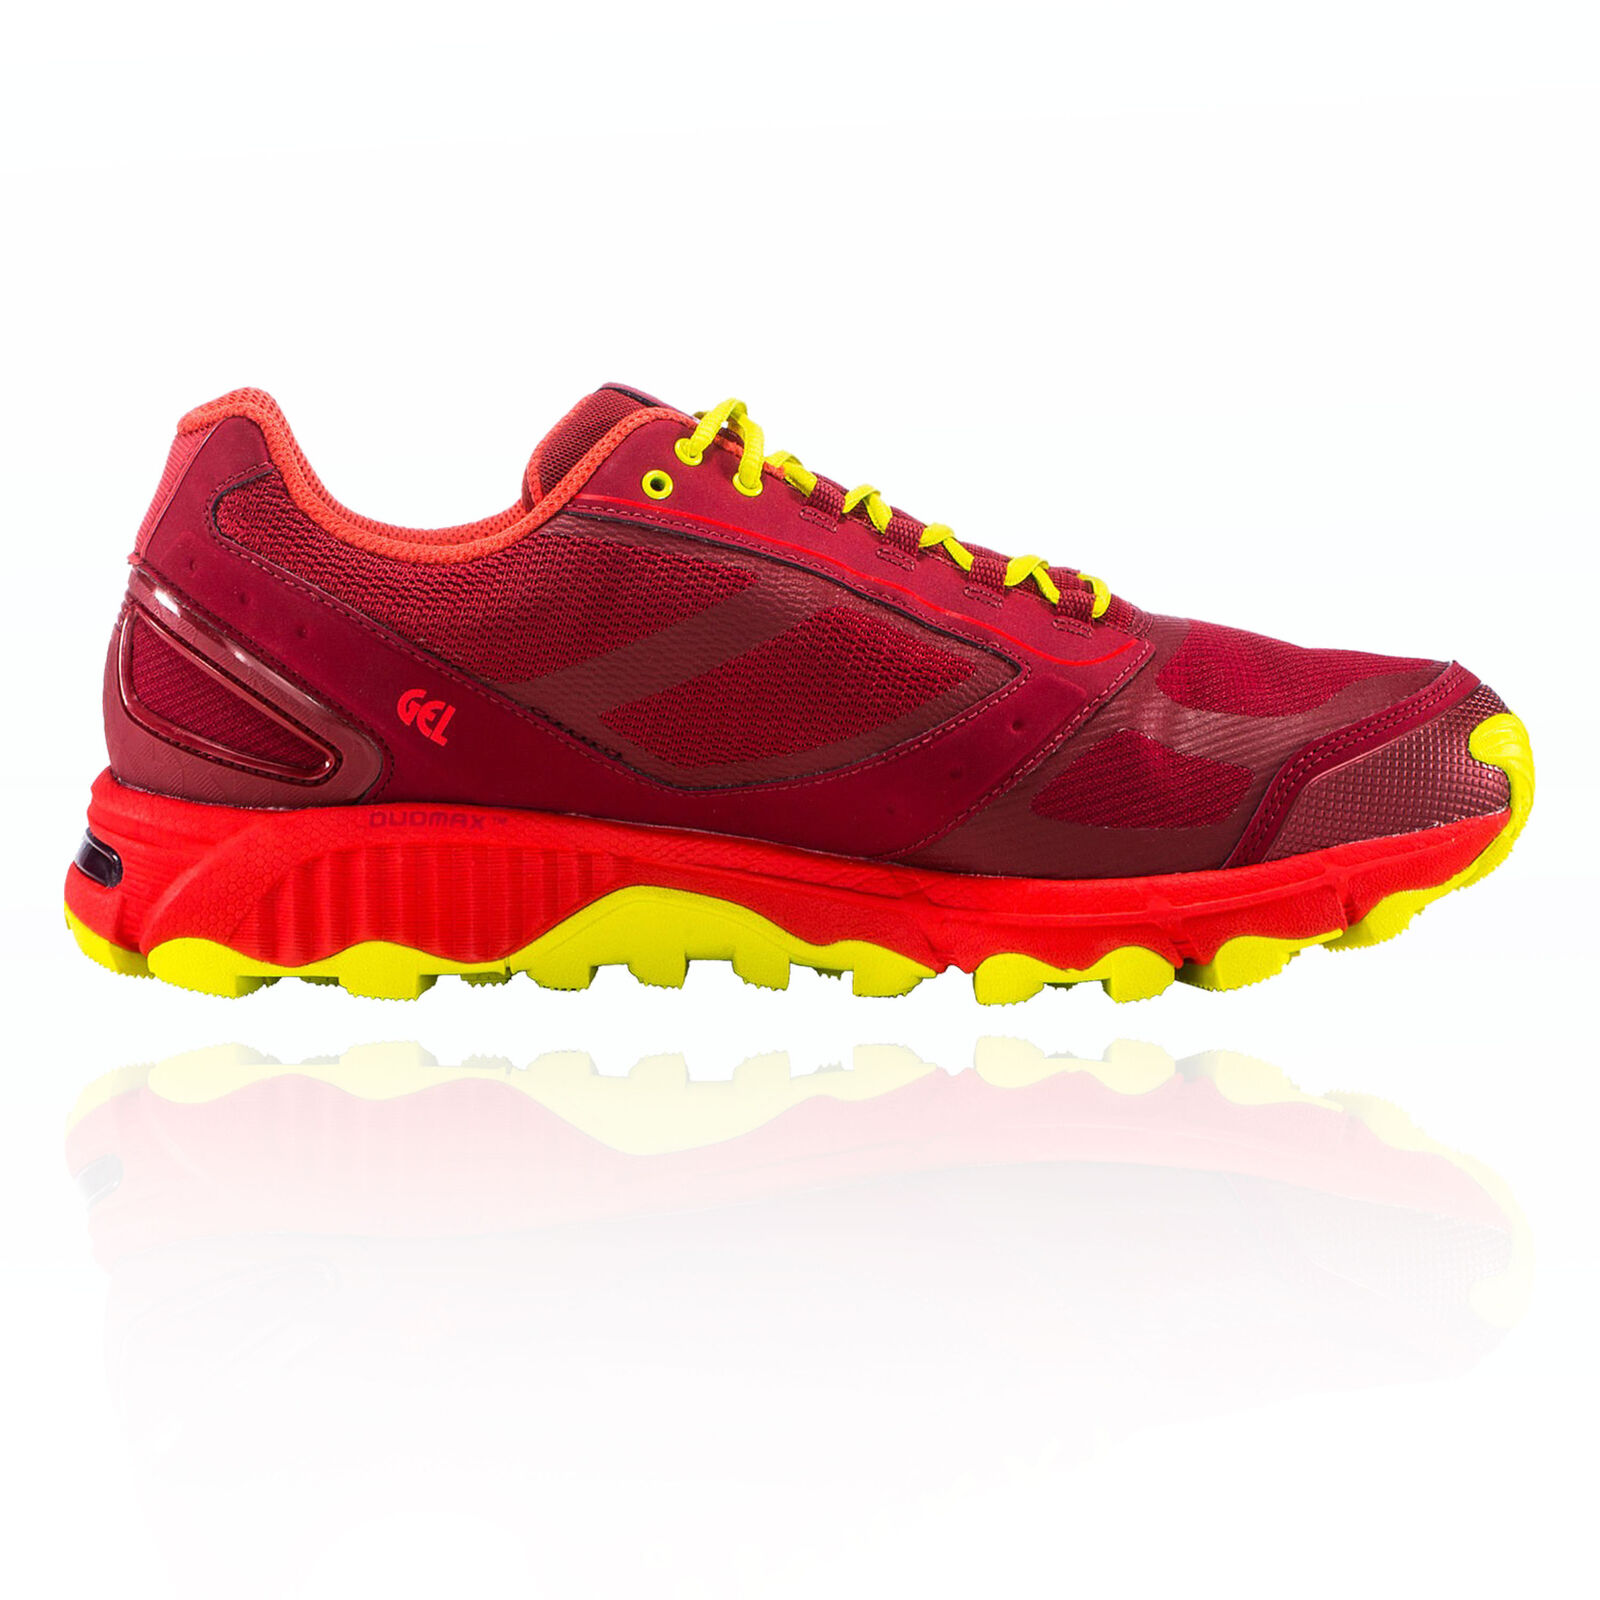 Haglofs Mens Gram Gravel Trail Running Shoes Trainers Sneakers Red Sports